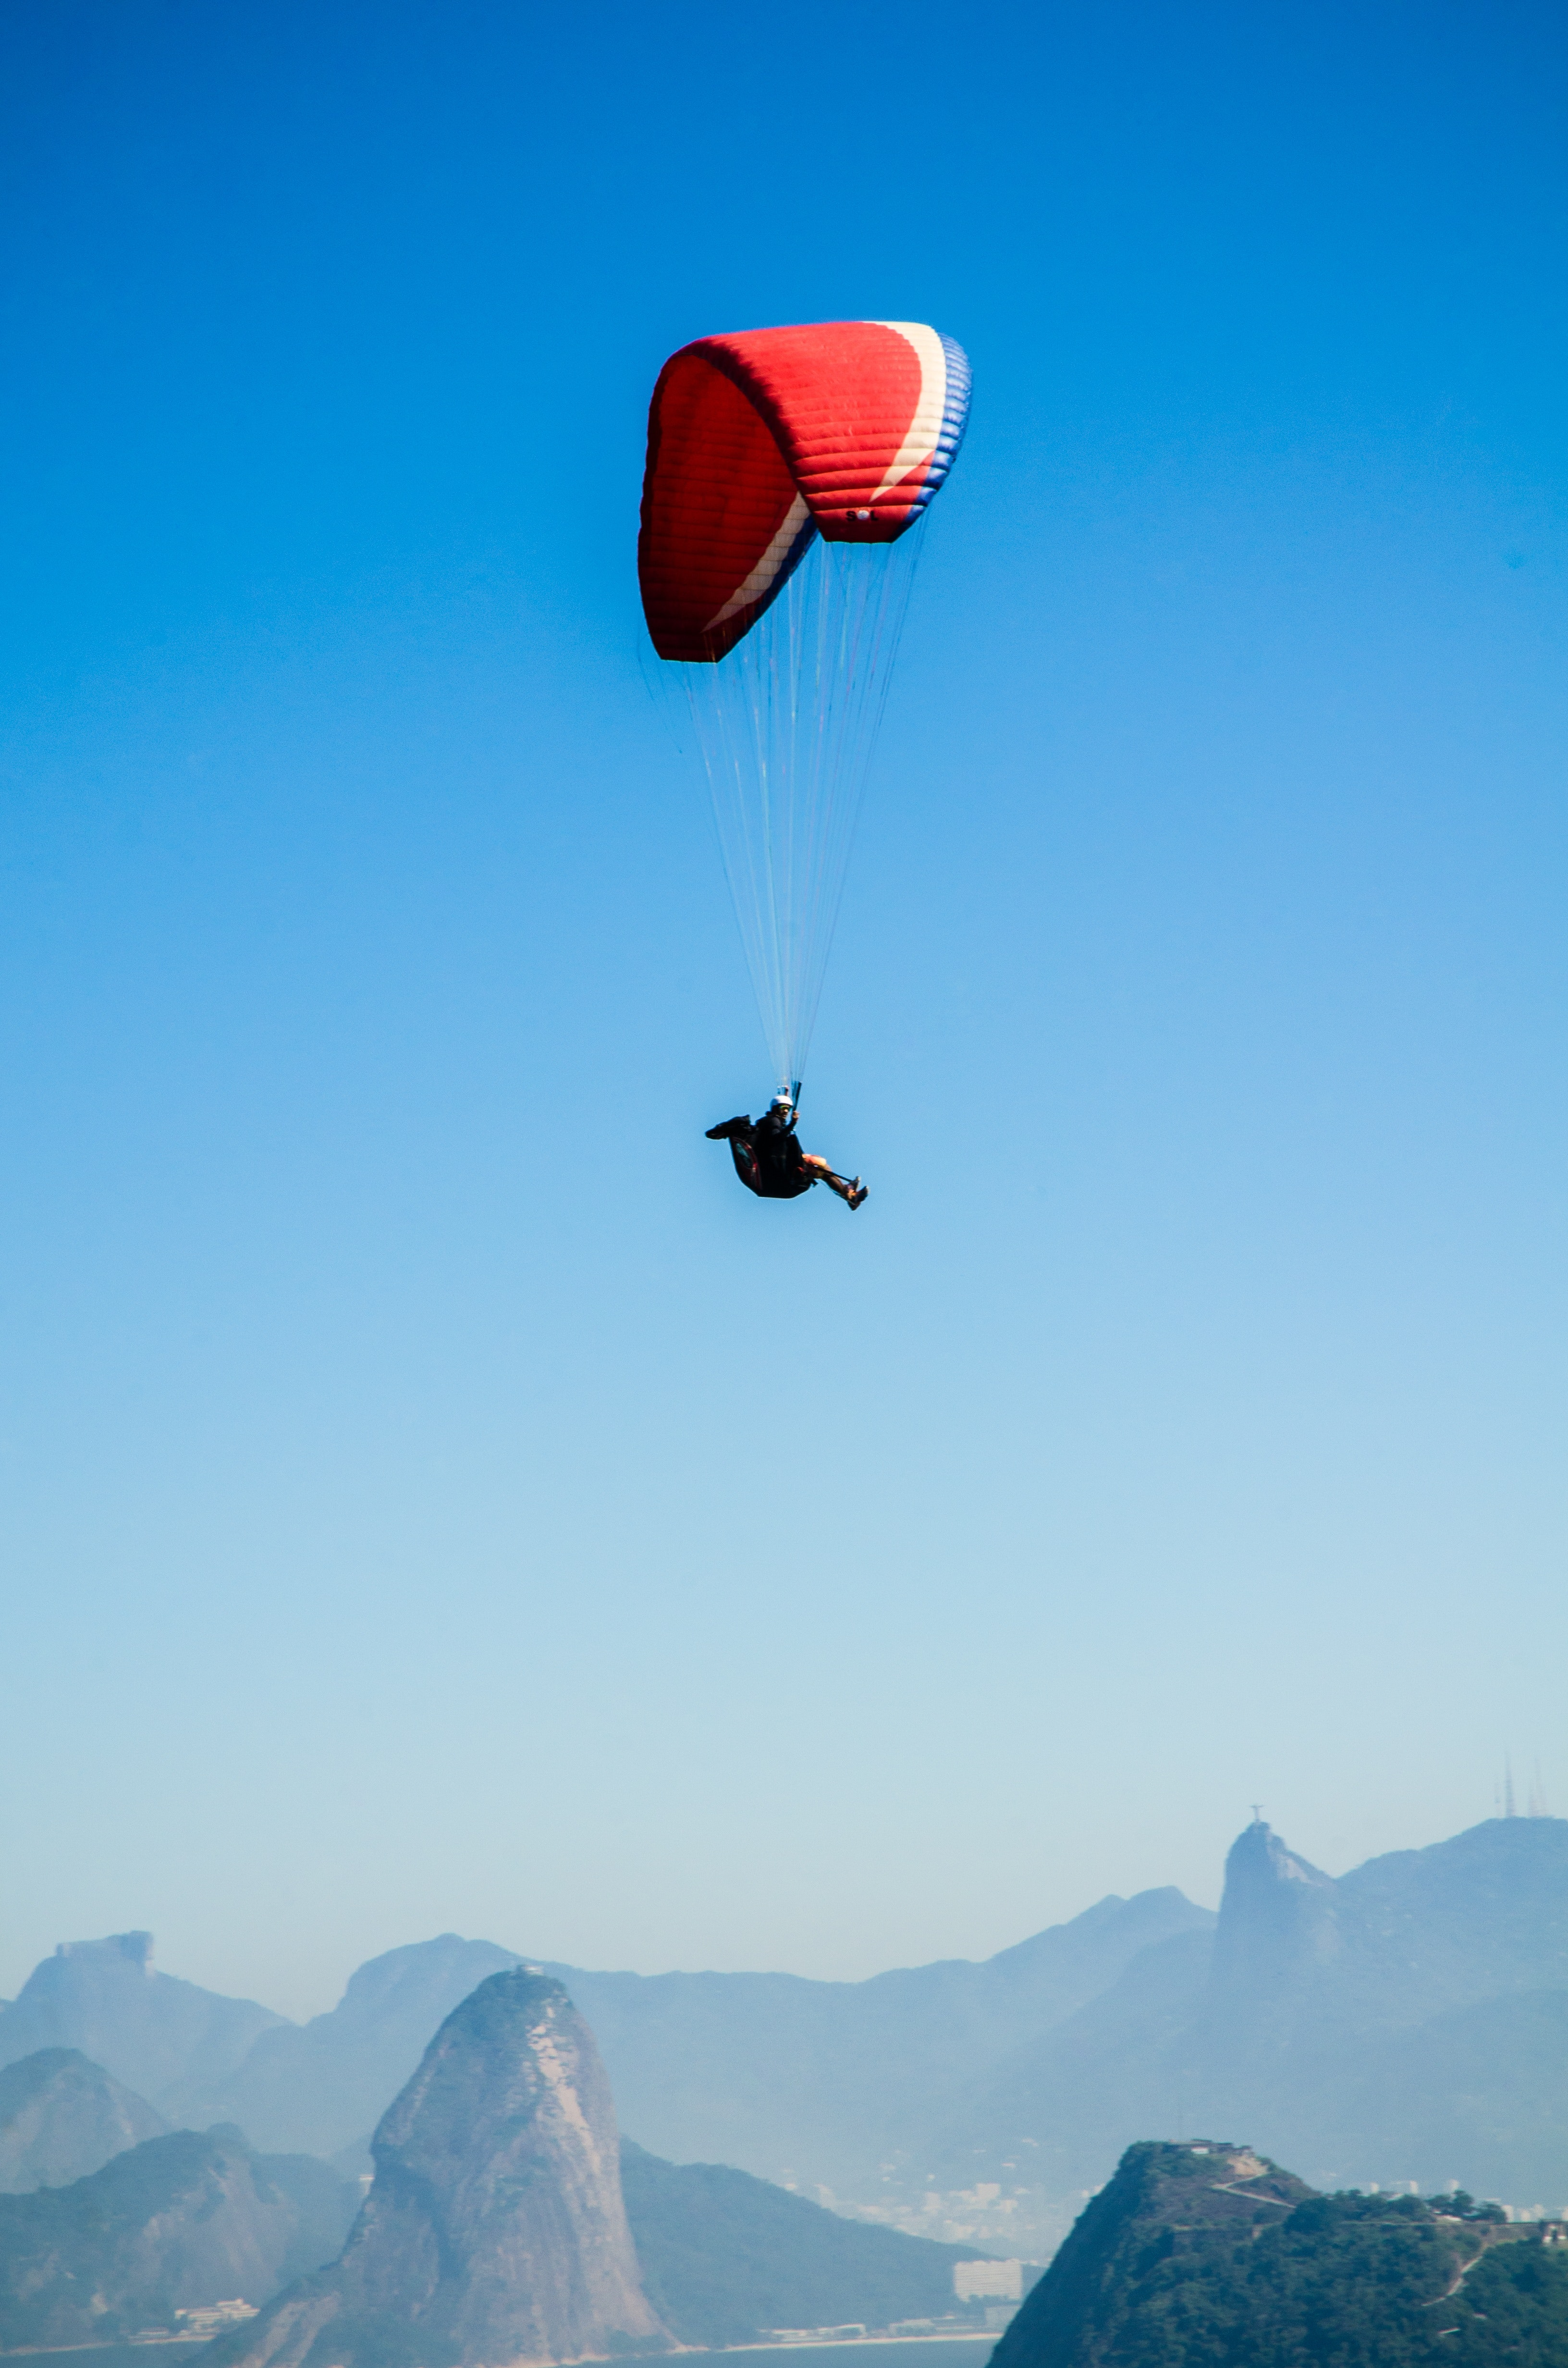 Red white parachute on top of mountains during daytime photo